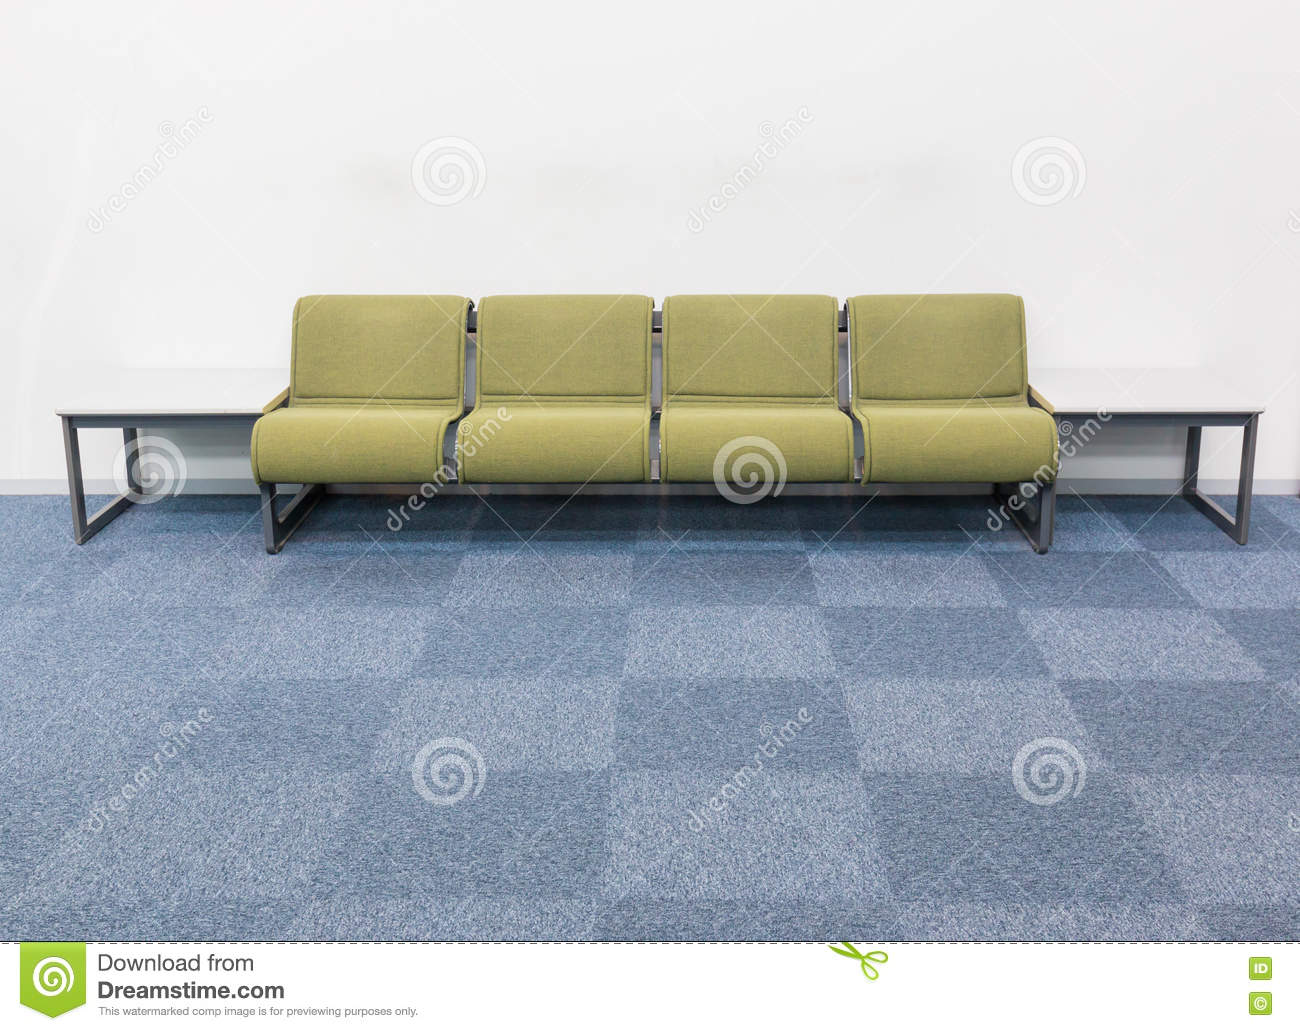 Fabulous Empty Chairs In Waiting Room Interior Design For Relax Pabps2019 Chair Design Images Pabps2019Com